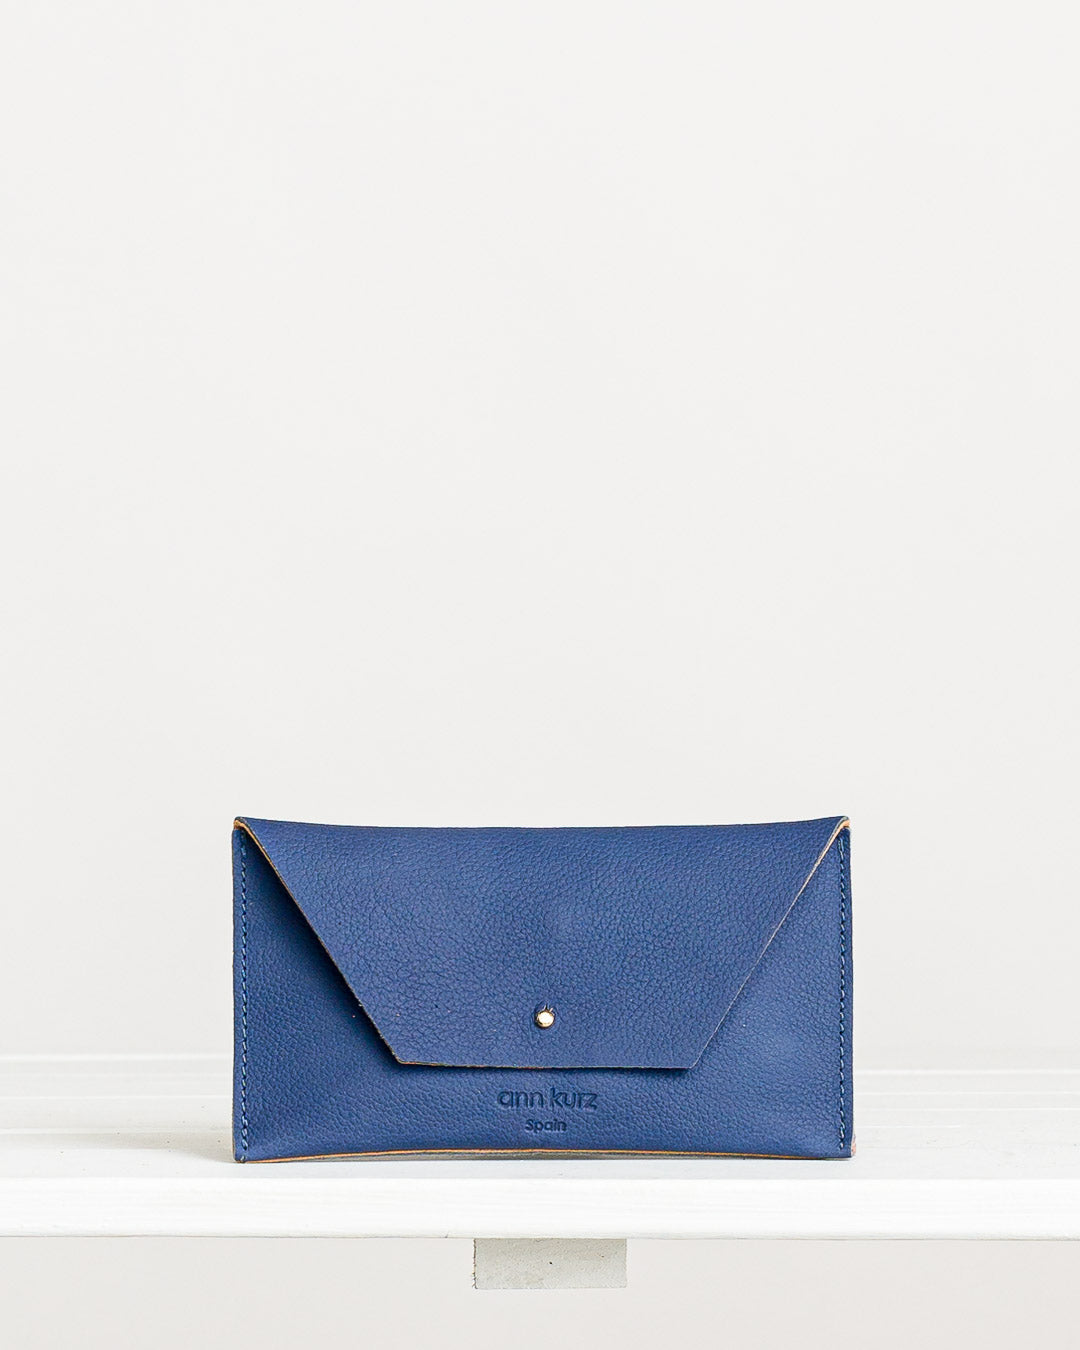 Ann Kurz // Purse Mini Mia Western Klein Blue